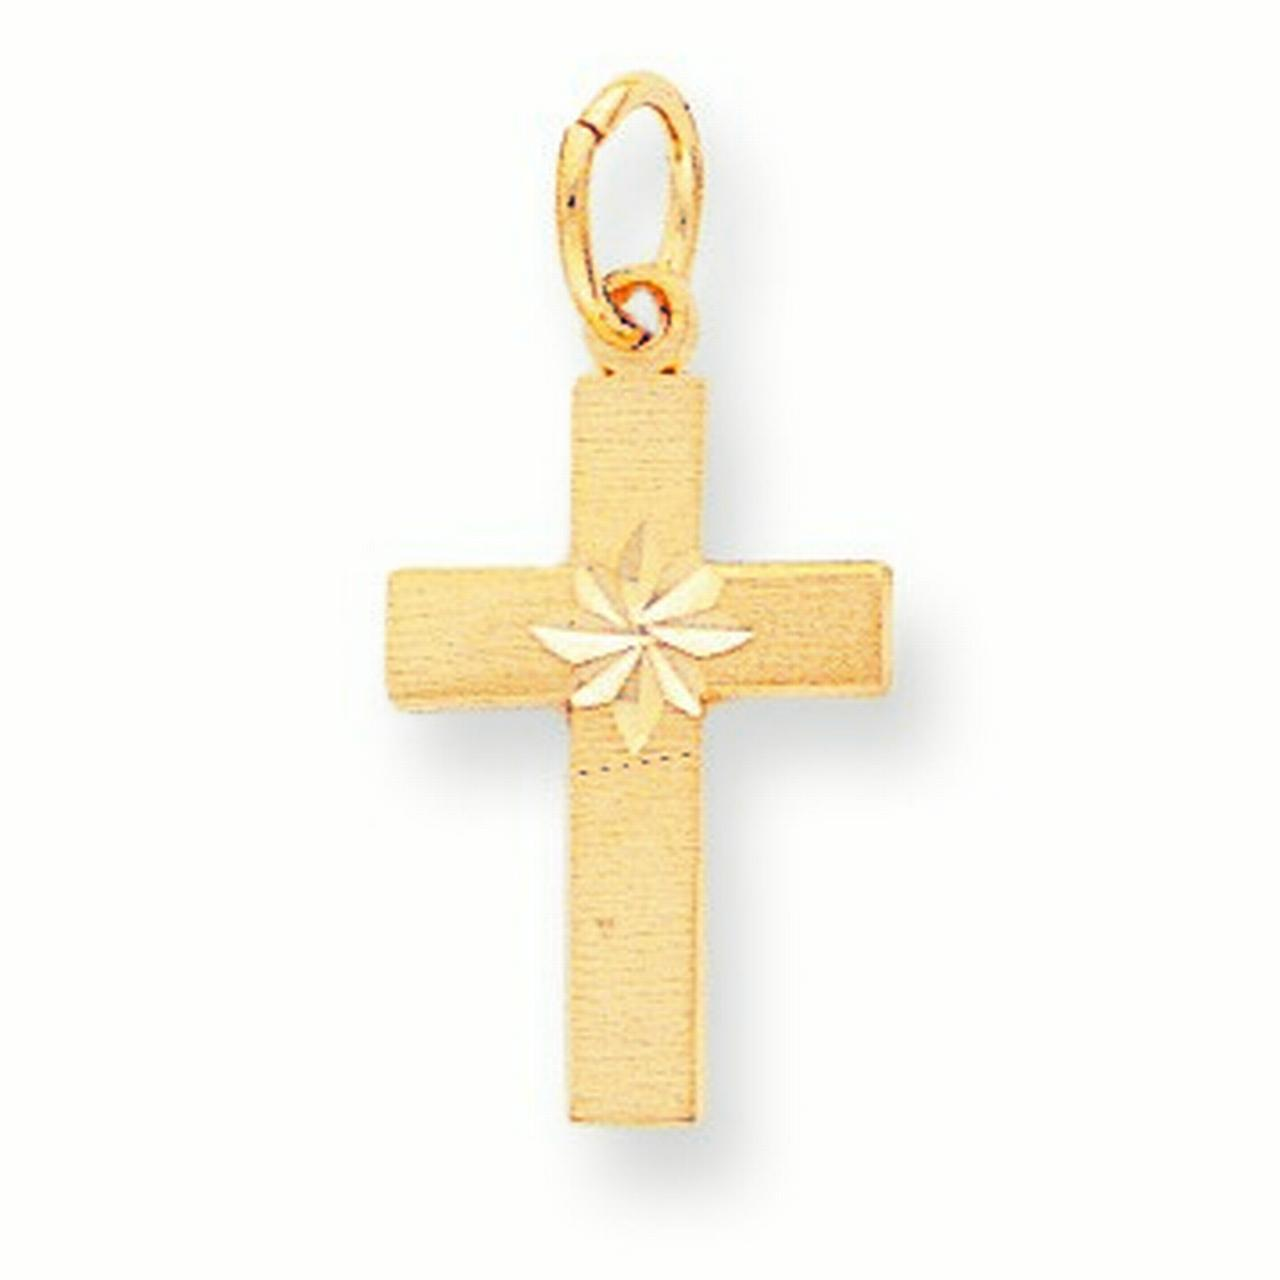 10k Yellow Gold DI-CUT Cross Charm - .9 Grams